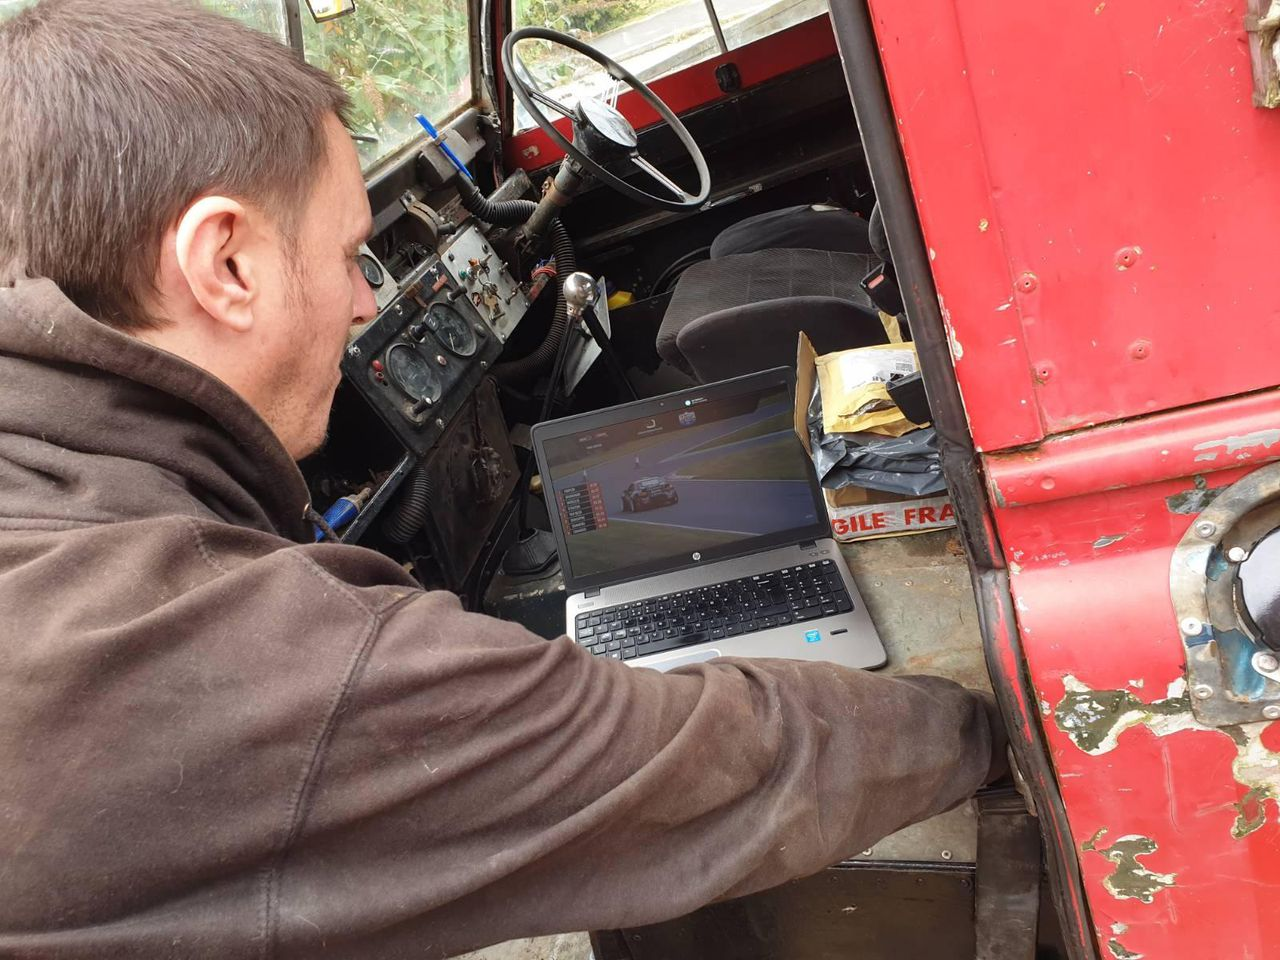 Me, watching a British Drift Championship livestream while working on the Land Rover.